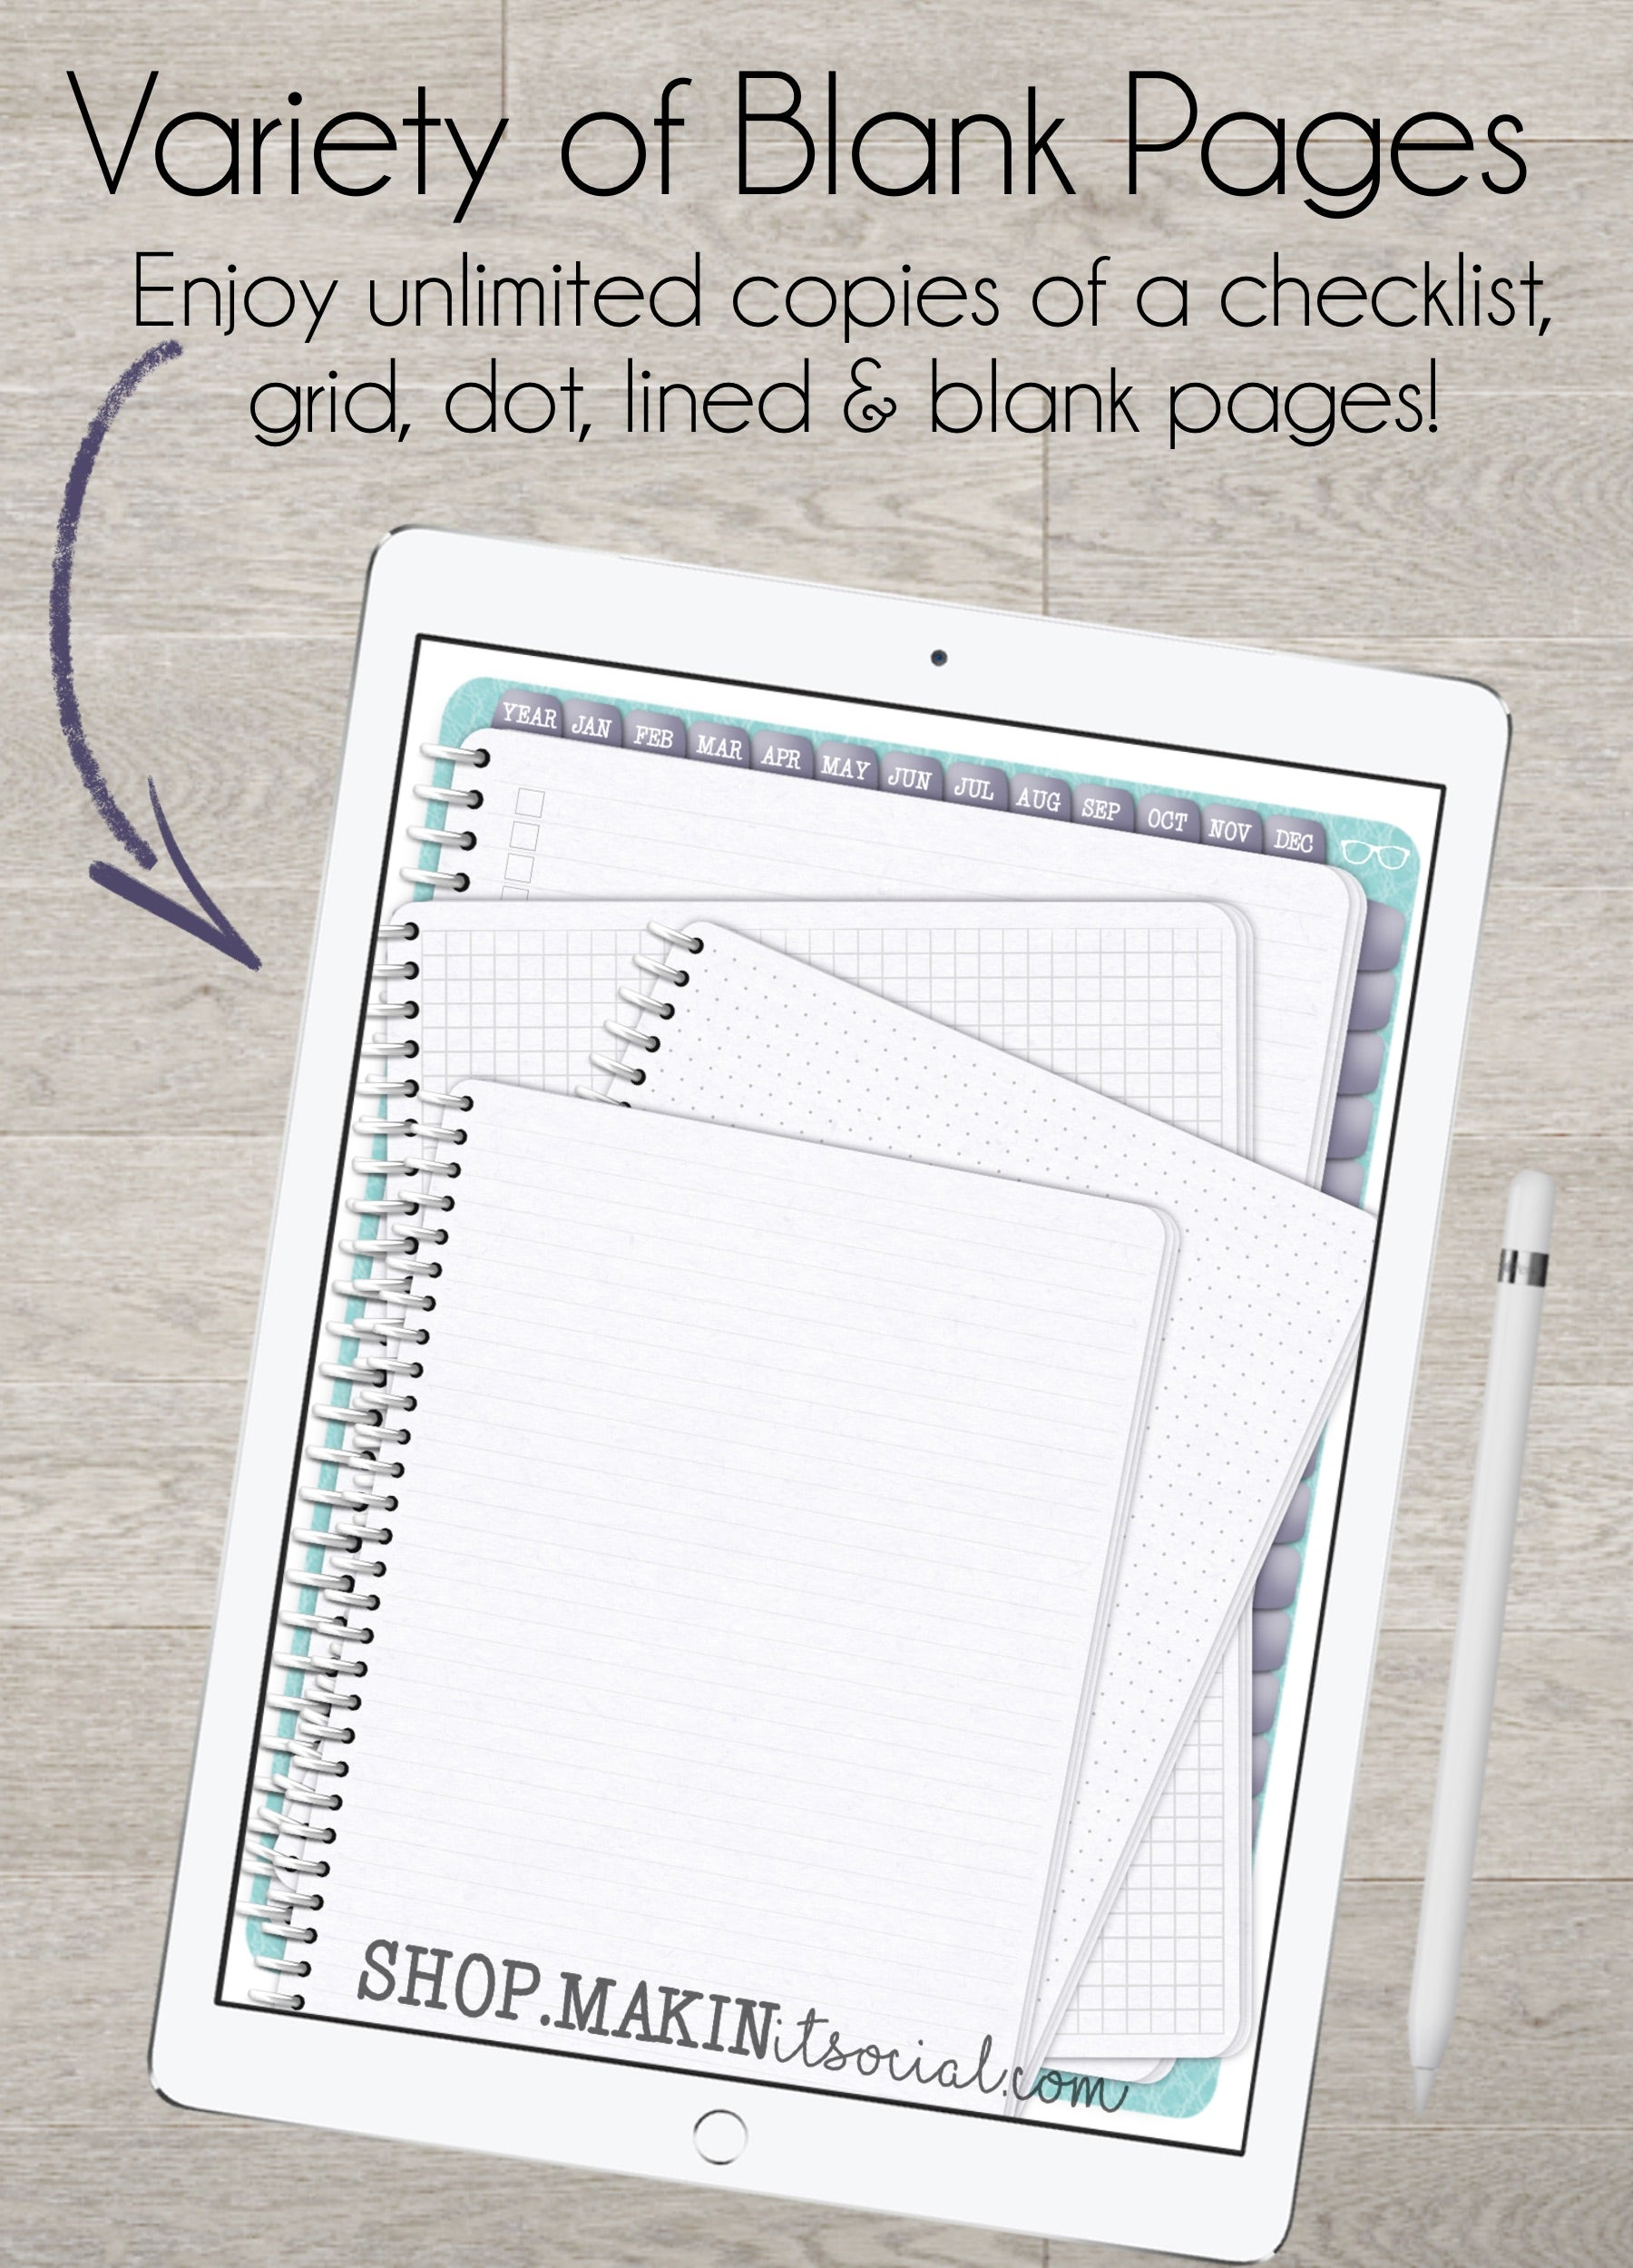 Makin it social Now What Digital Direct Sales Planner Teal Undated variety of blank pages